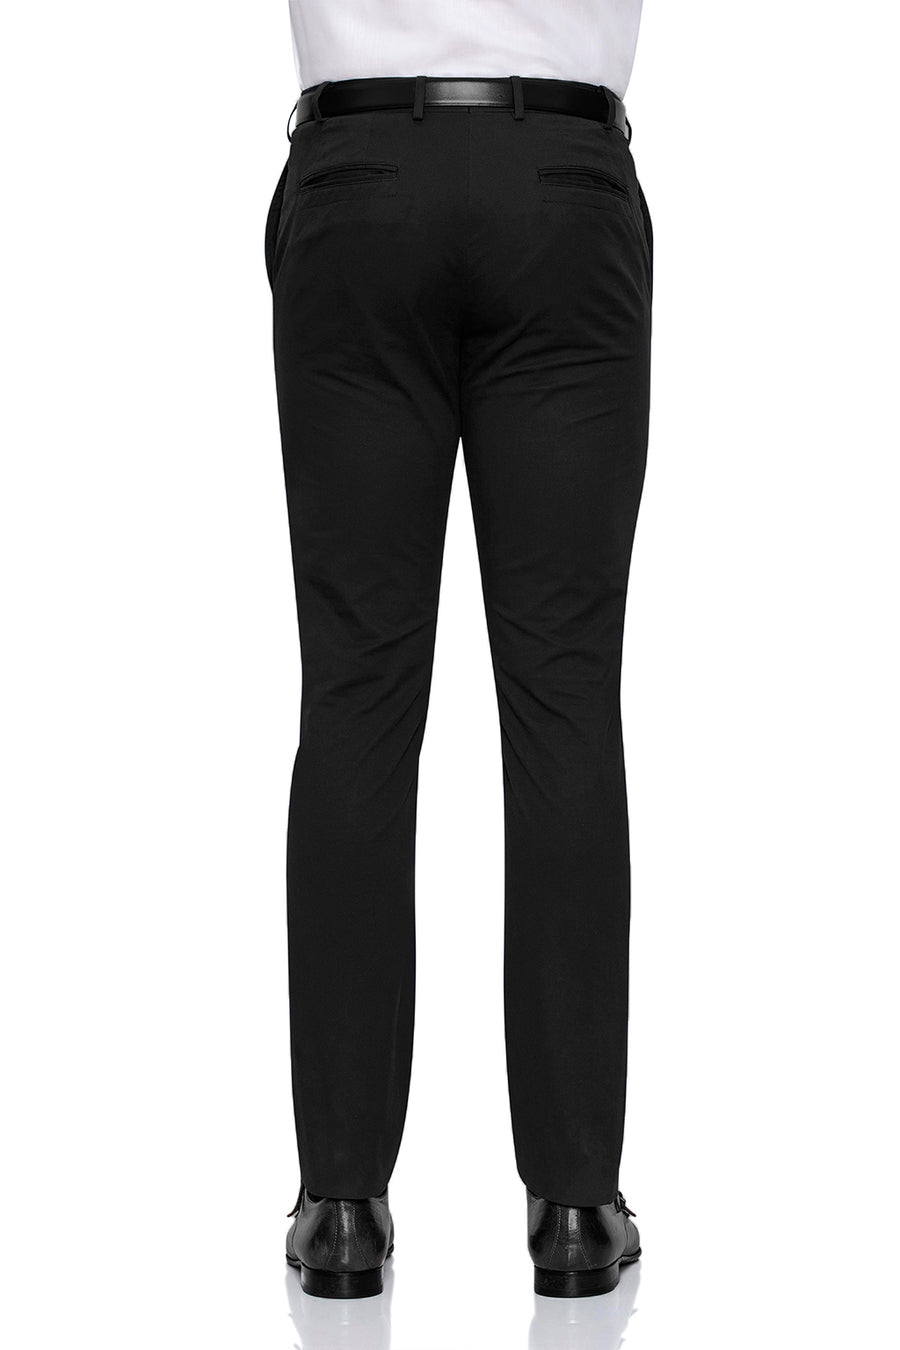 JOE BLACK HELM CHINO - FJF975